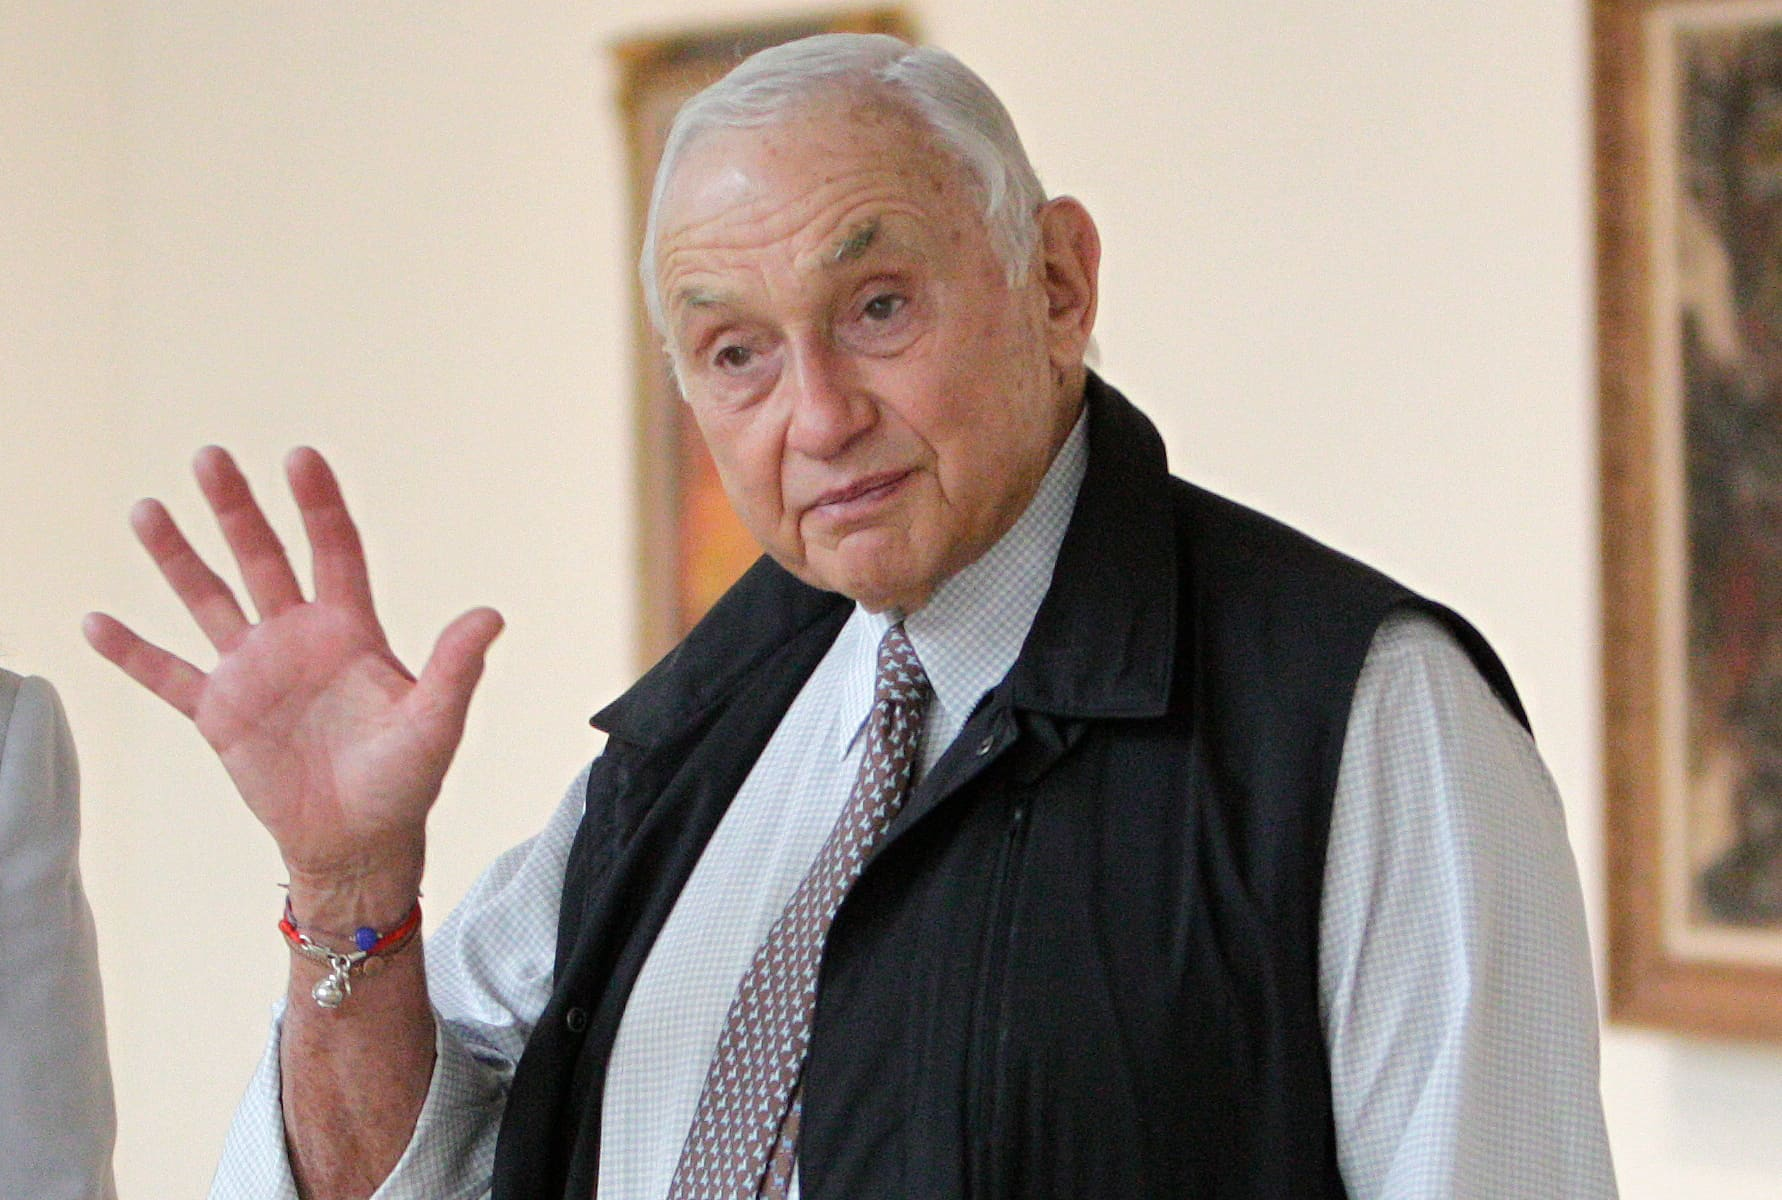 L Brands CEO Les Wexner: I'm 'embarrassed' that 'depraved' Jeffrey Epstein took advantage of me